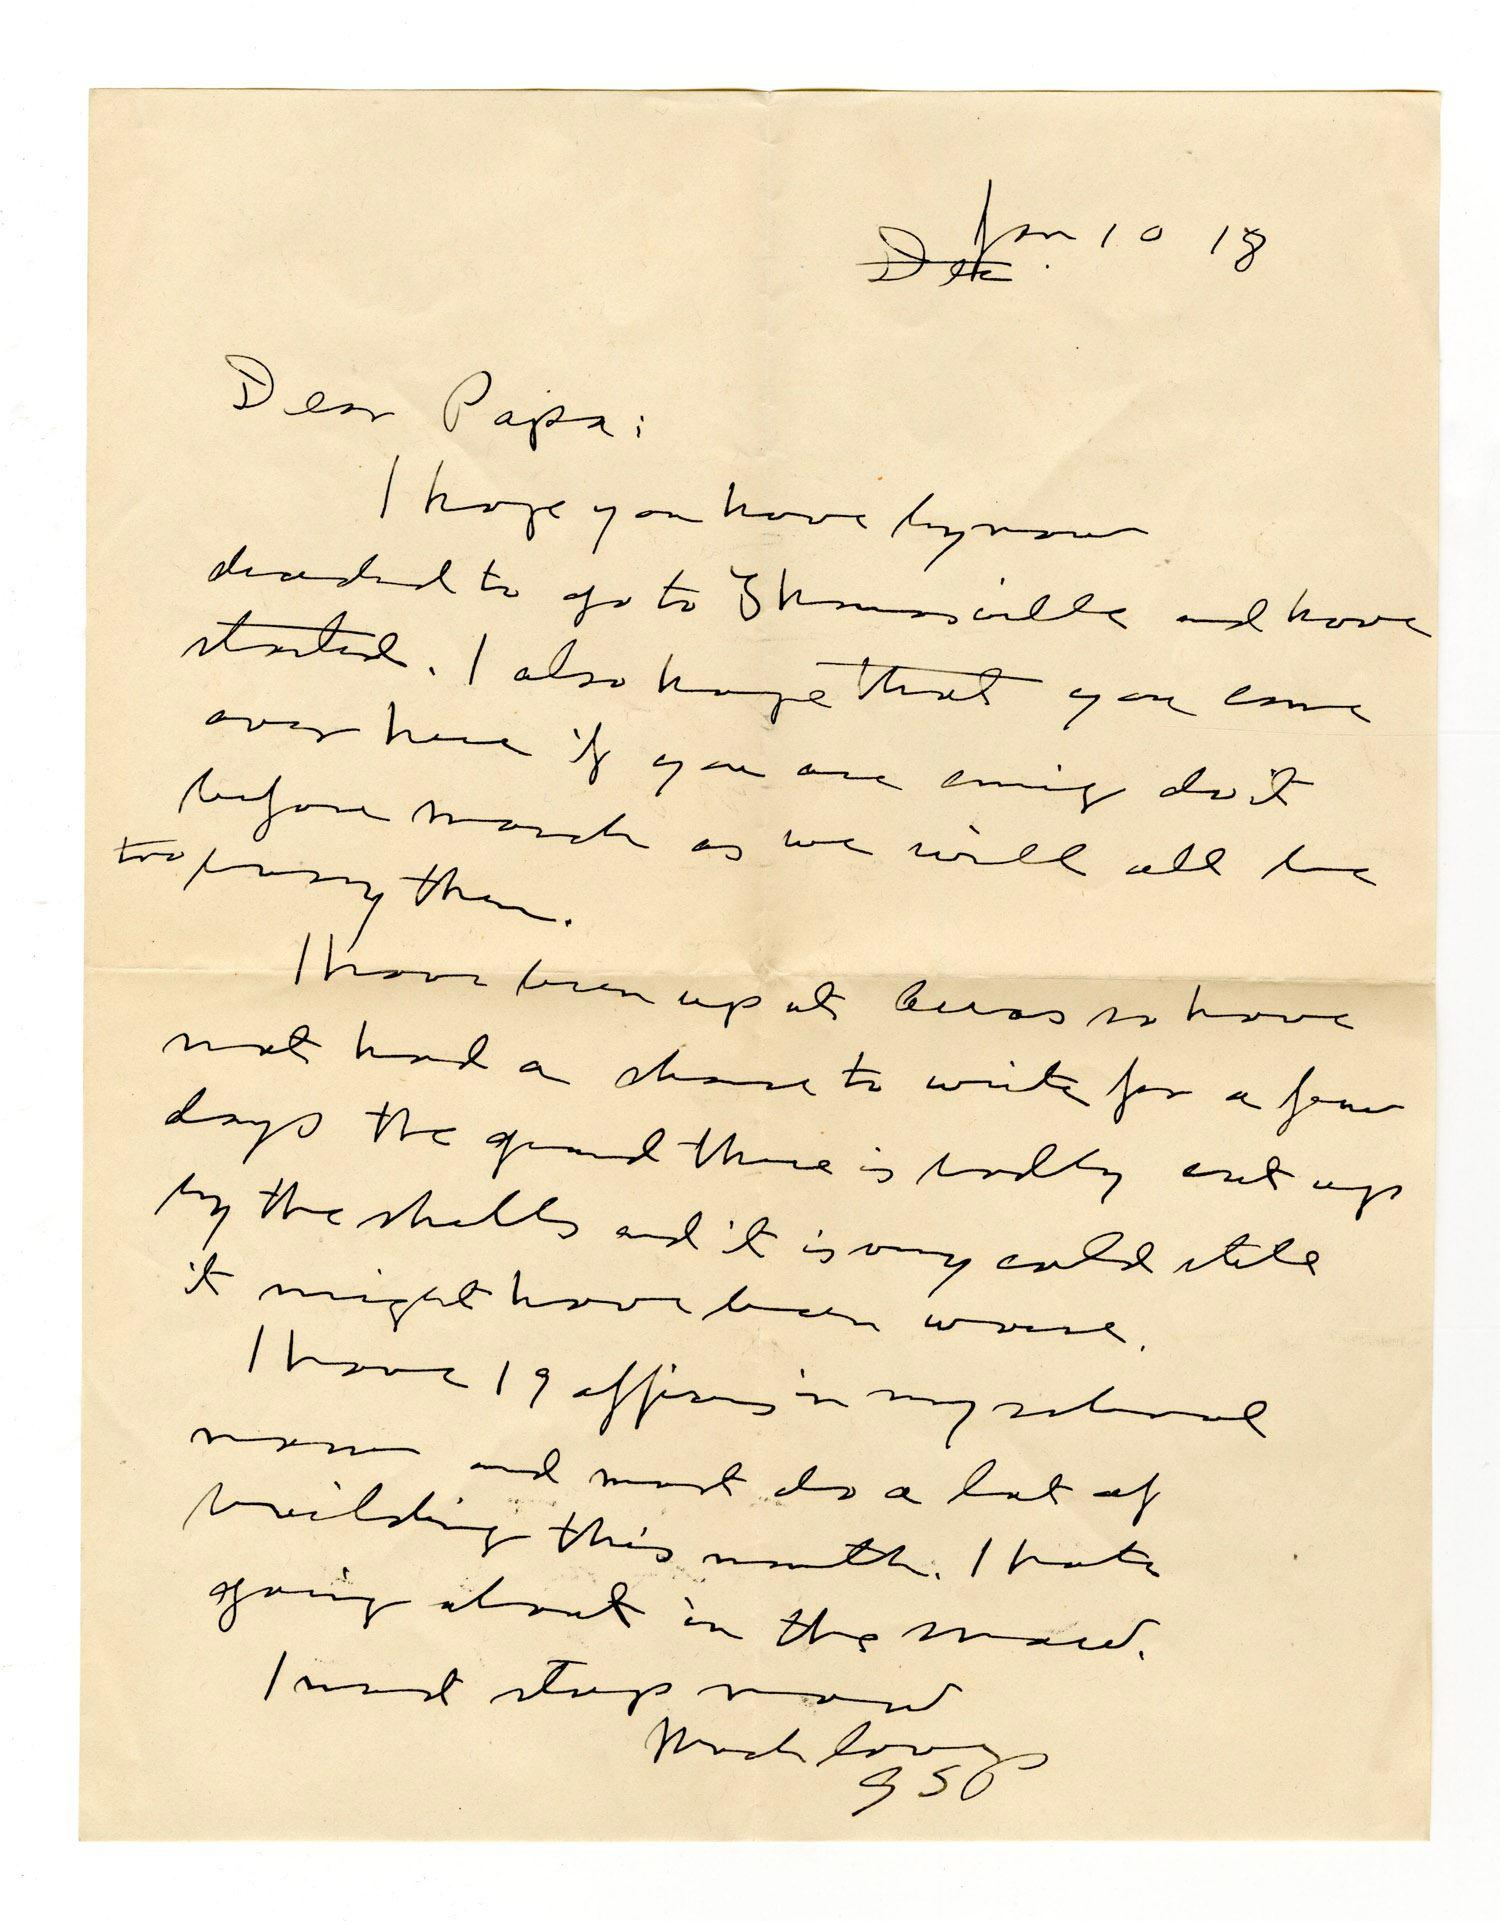 Captain George S. Patton Writes to His Father about the New Tank School He is Creating in France